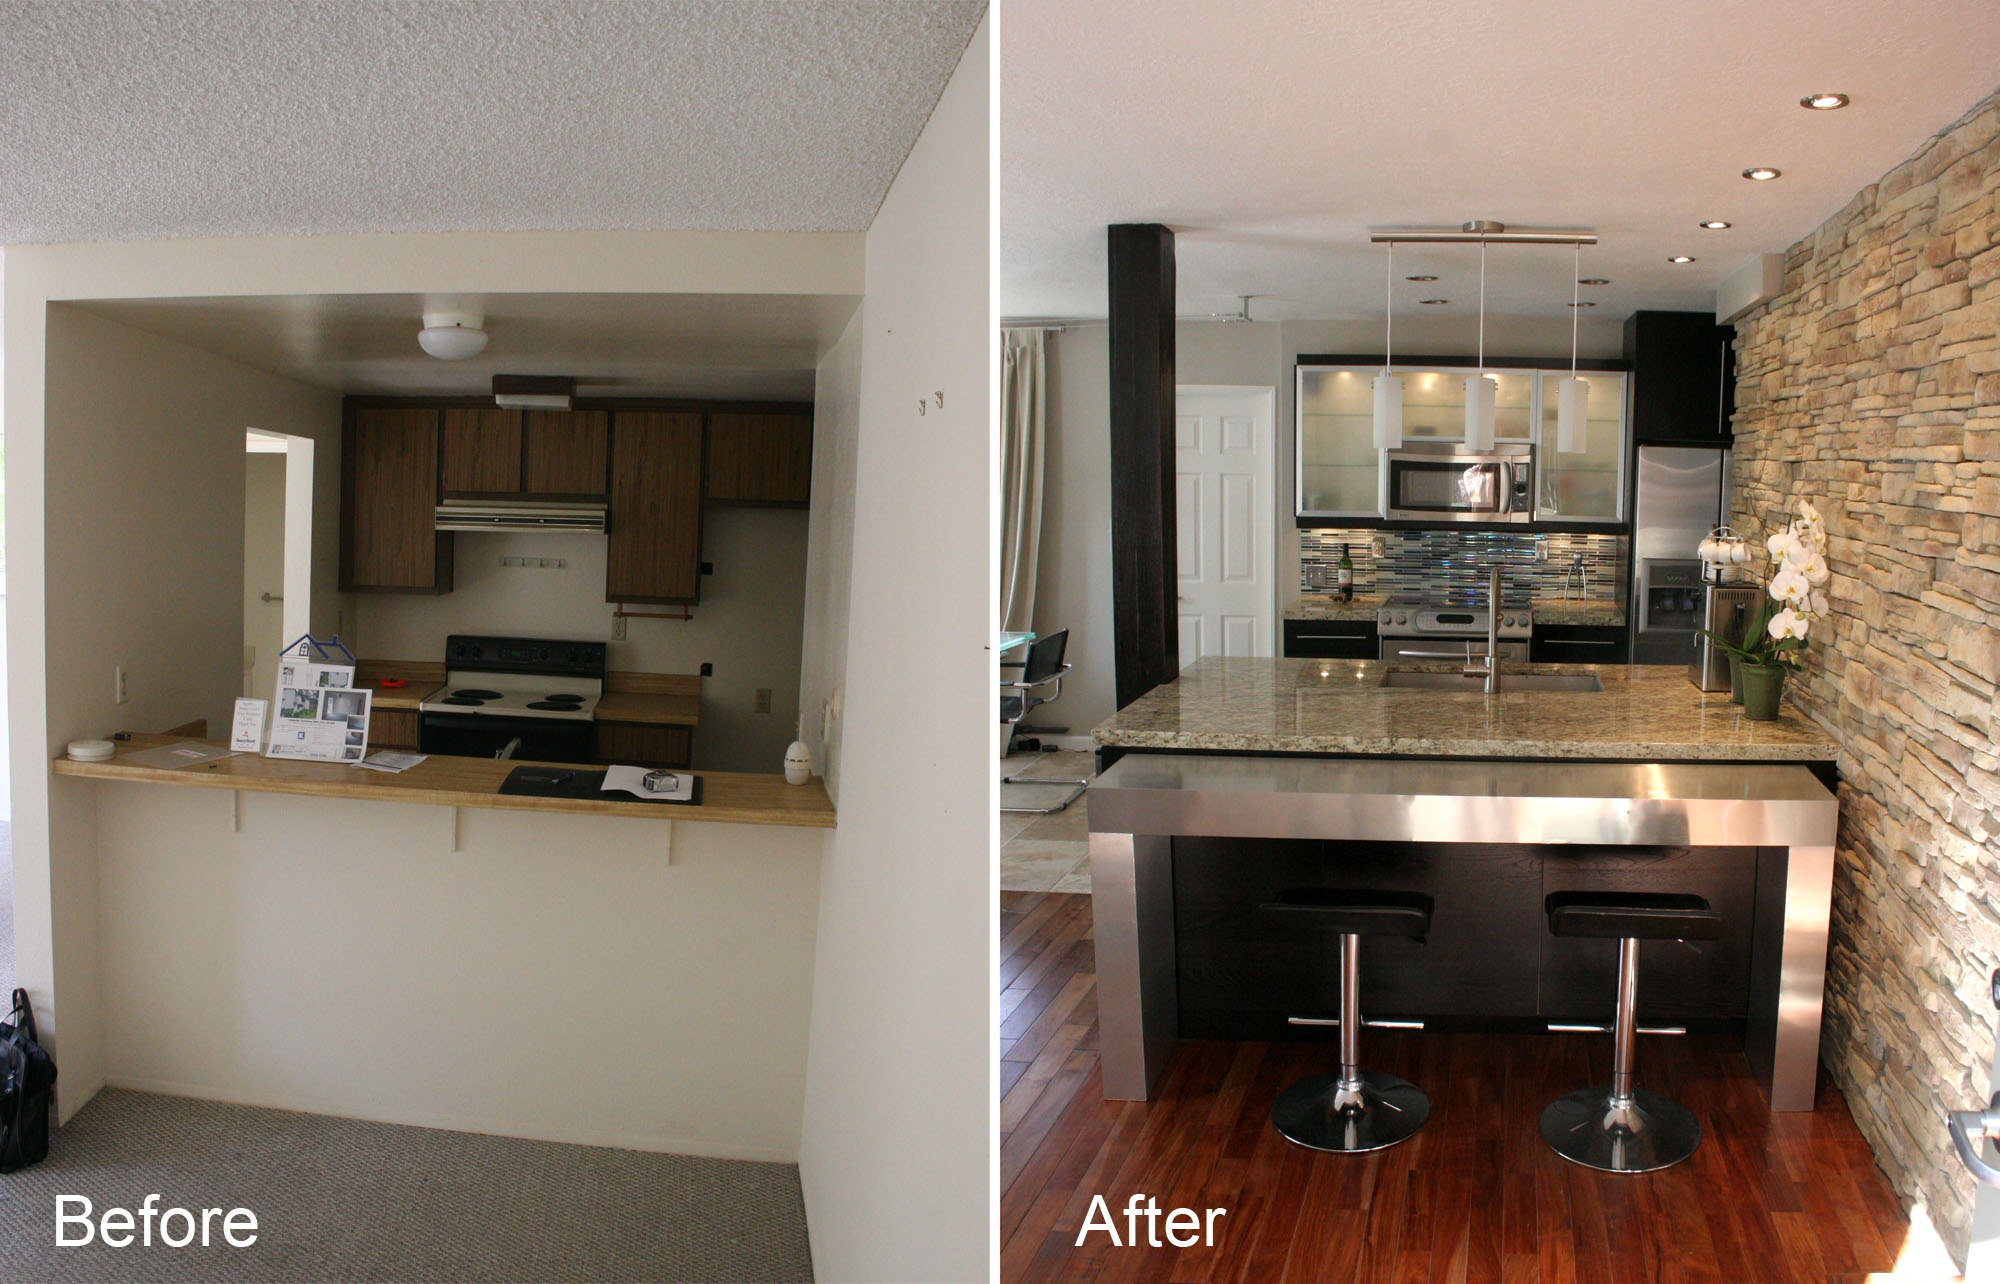 Kitchen planning and design kitchen remodeling in a for Before after kitchen makeovers